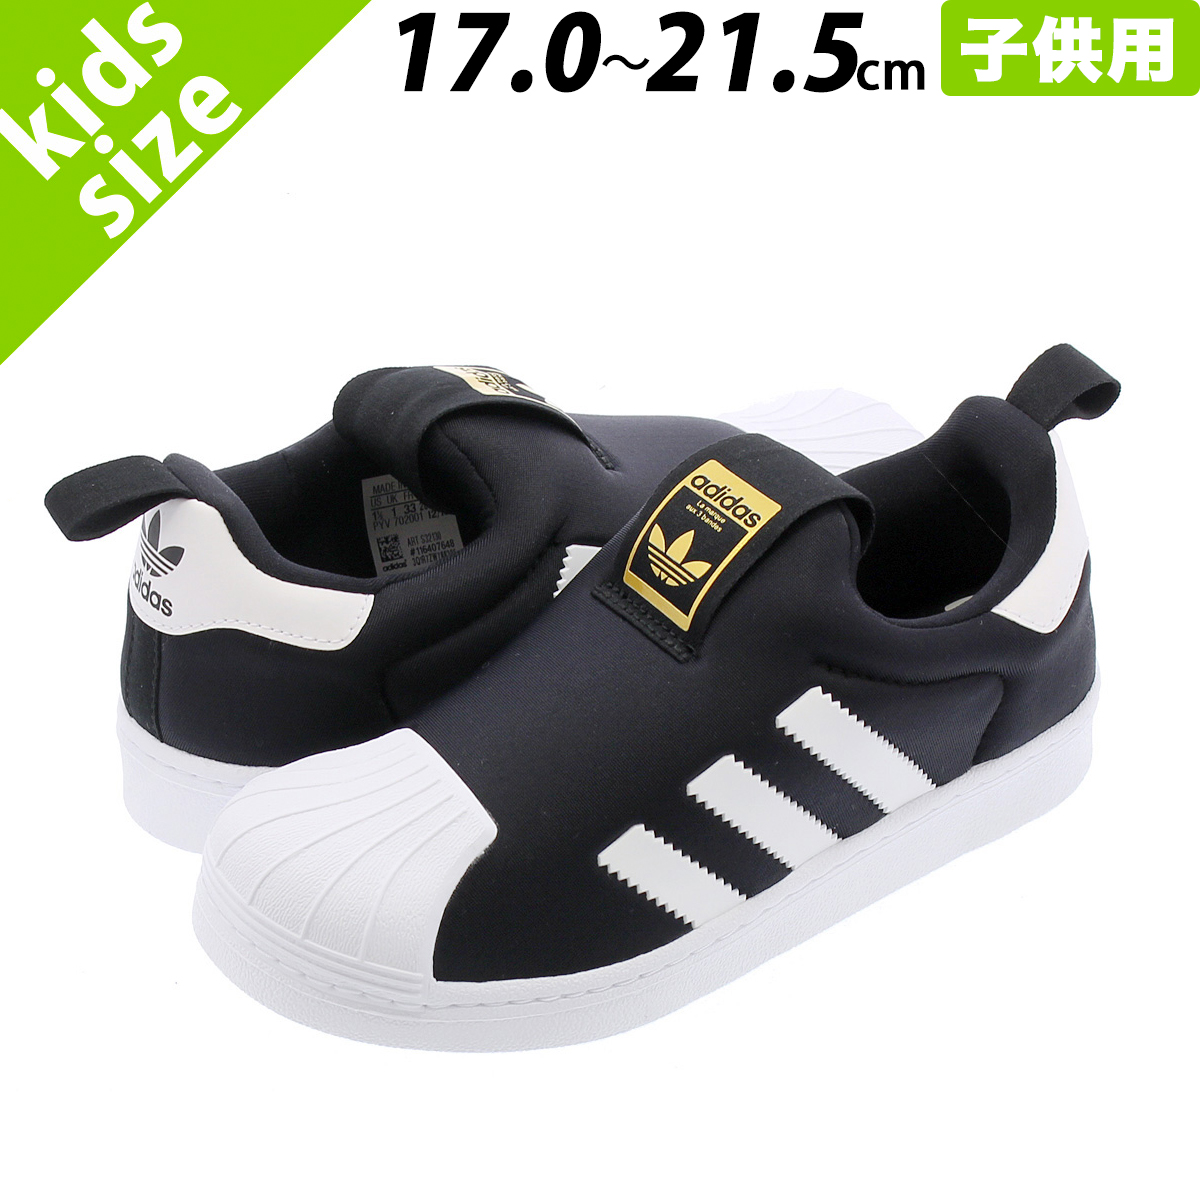 adidas SUPER STAR 360 C Adidas superstar 360 C CORE BLACK/WHITE/GOLD MET